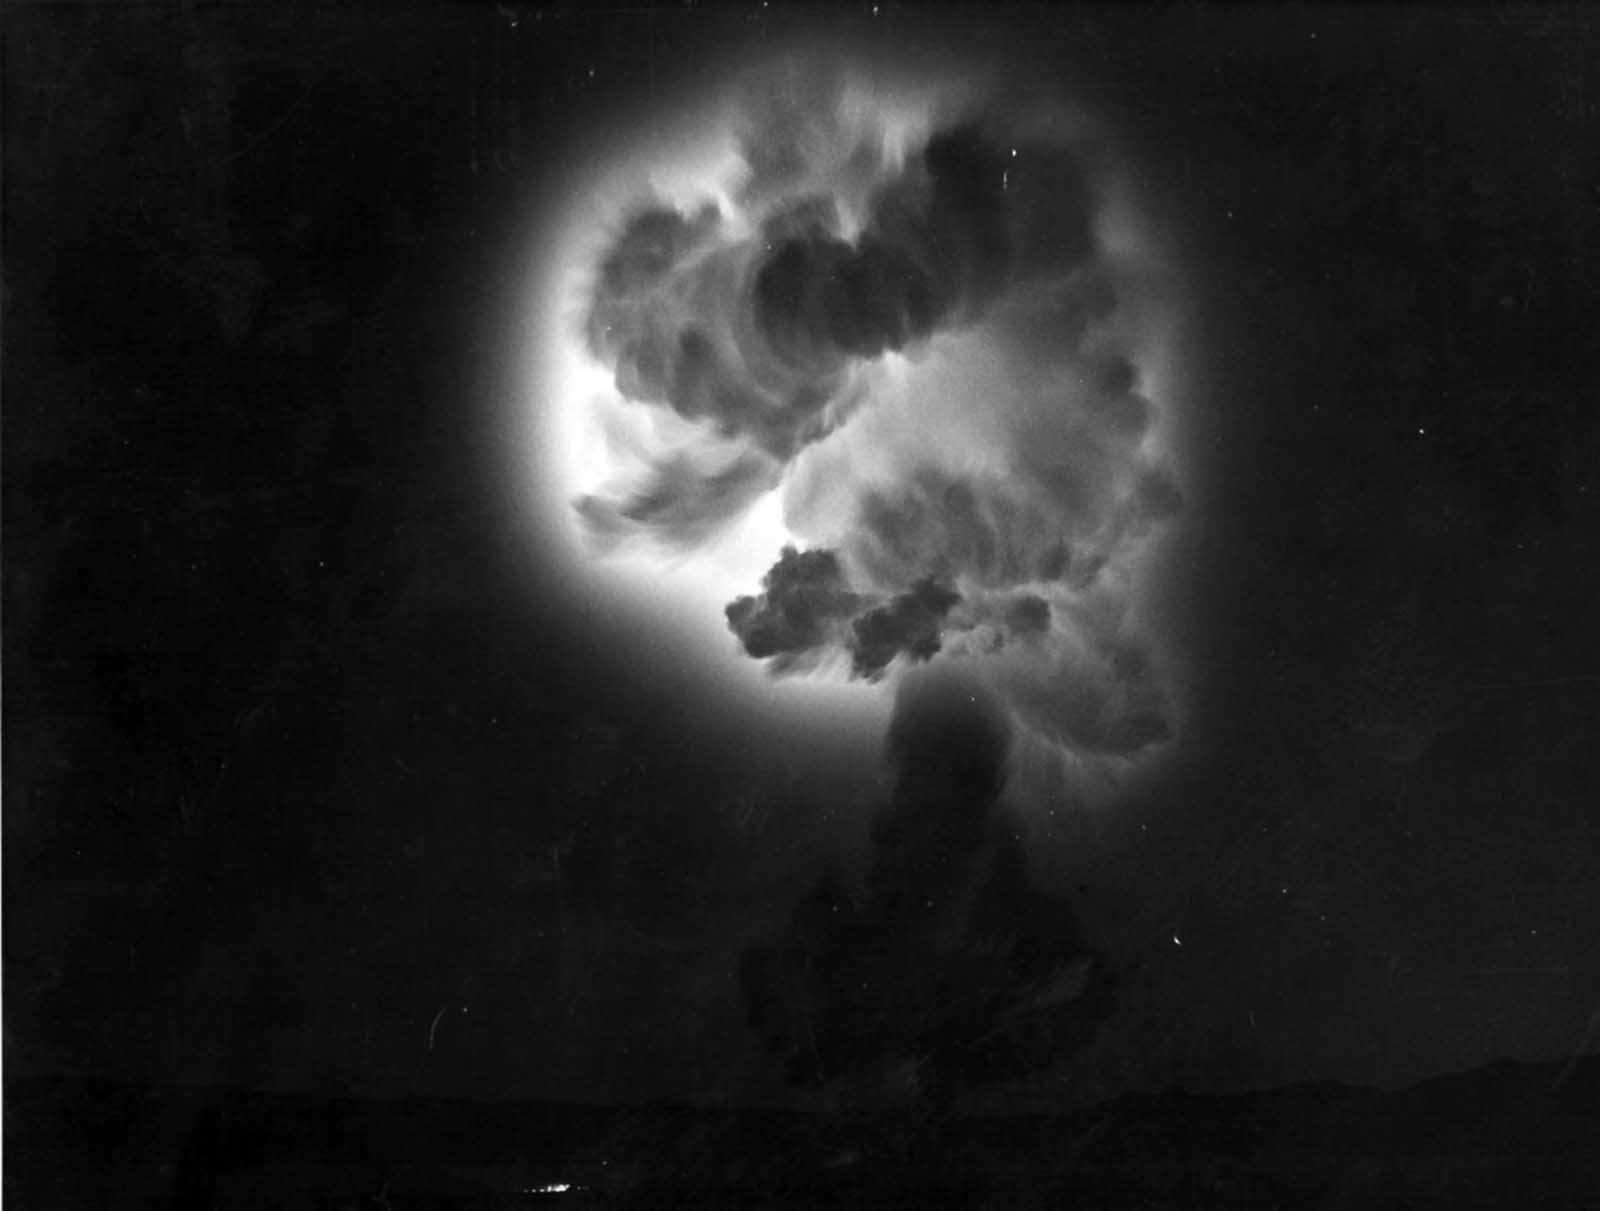 Ionization glow surrounds the cooling fireball of the Diablo shot, fired in Yucca Flat at 4:30 a.m. on Monday, July 15, 1957.